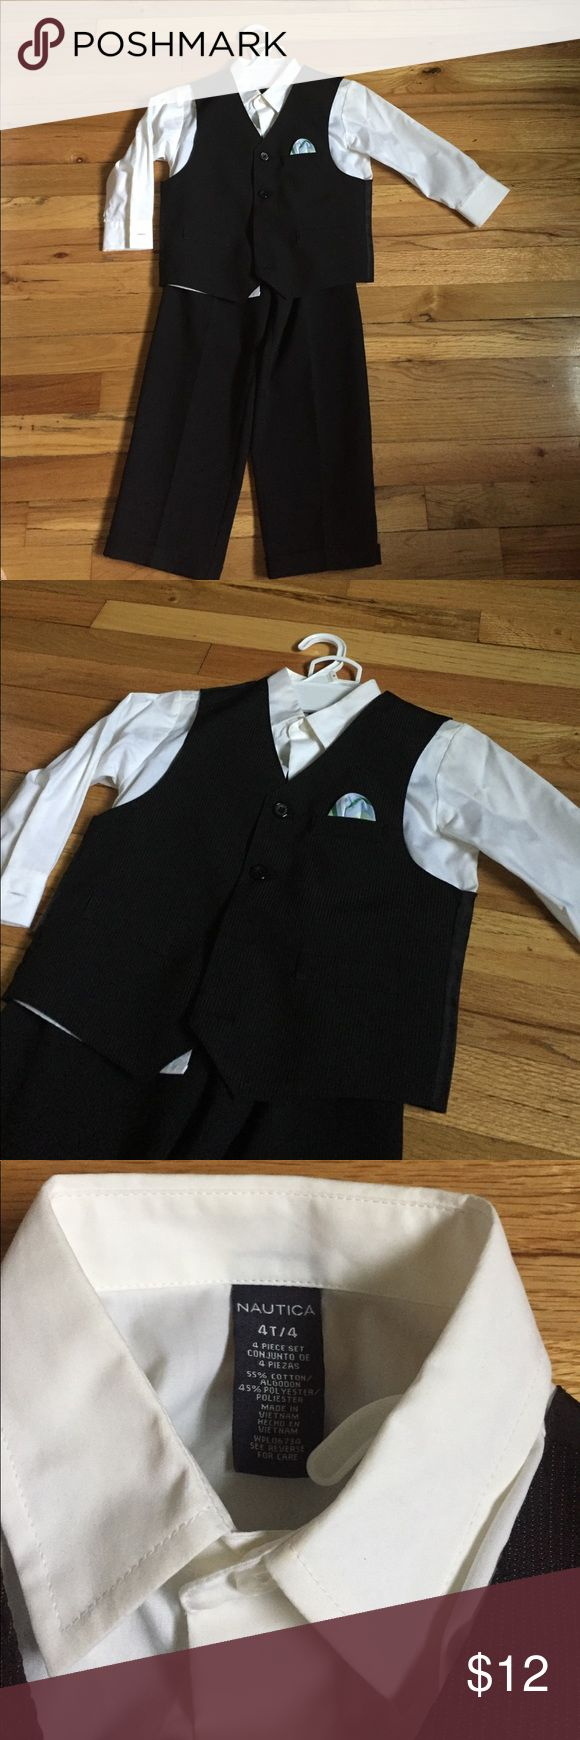 Nautica Boys 3pc dress pants, shirt and vest (4) Your little man will be the definition of dapper in this handsome set that's perfect for any special occasion. includes shirt, vest, tie and pants shirt: white point collar, long sleeves, button front vest: button front (black pinstripe) with blue/white pocket square  pants: polyester (black pinstripe) washable Nautica Matching Sets